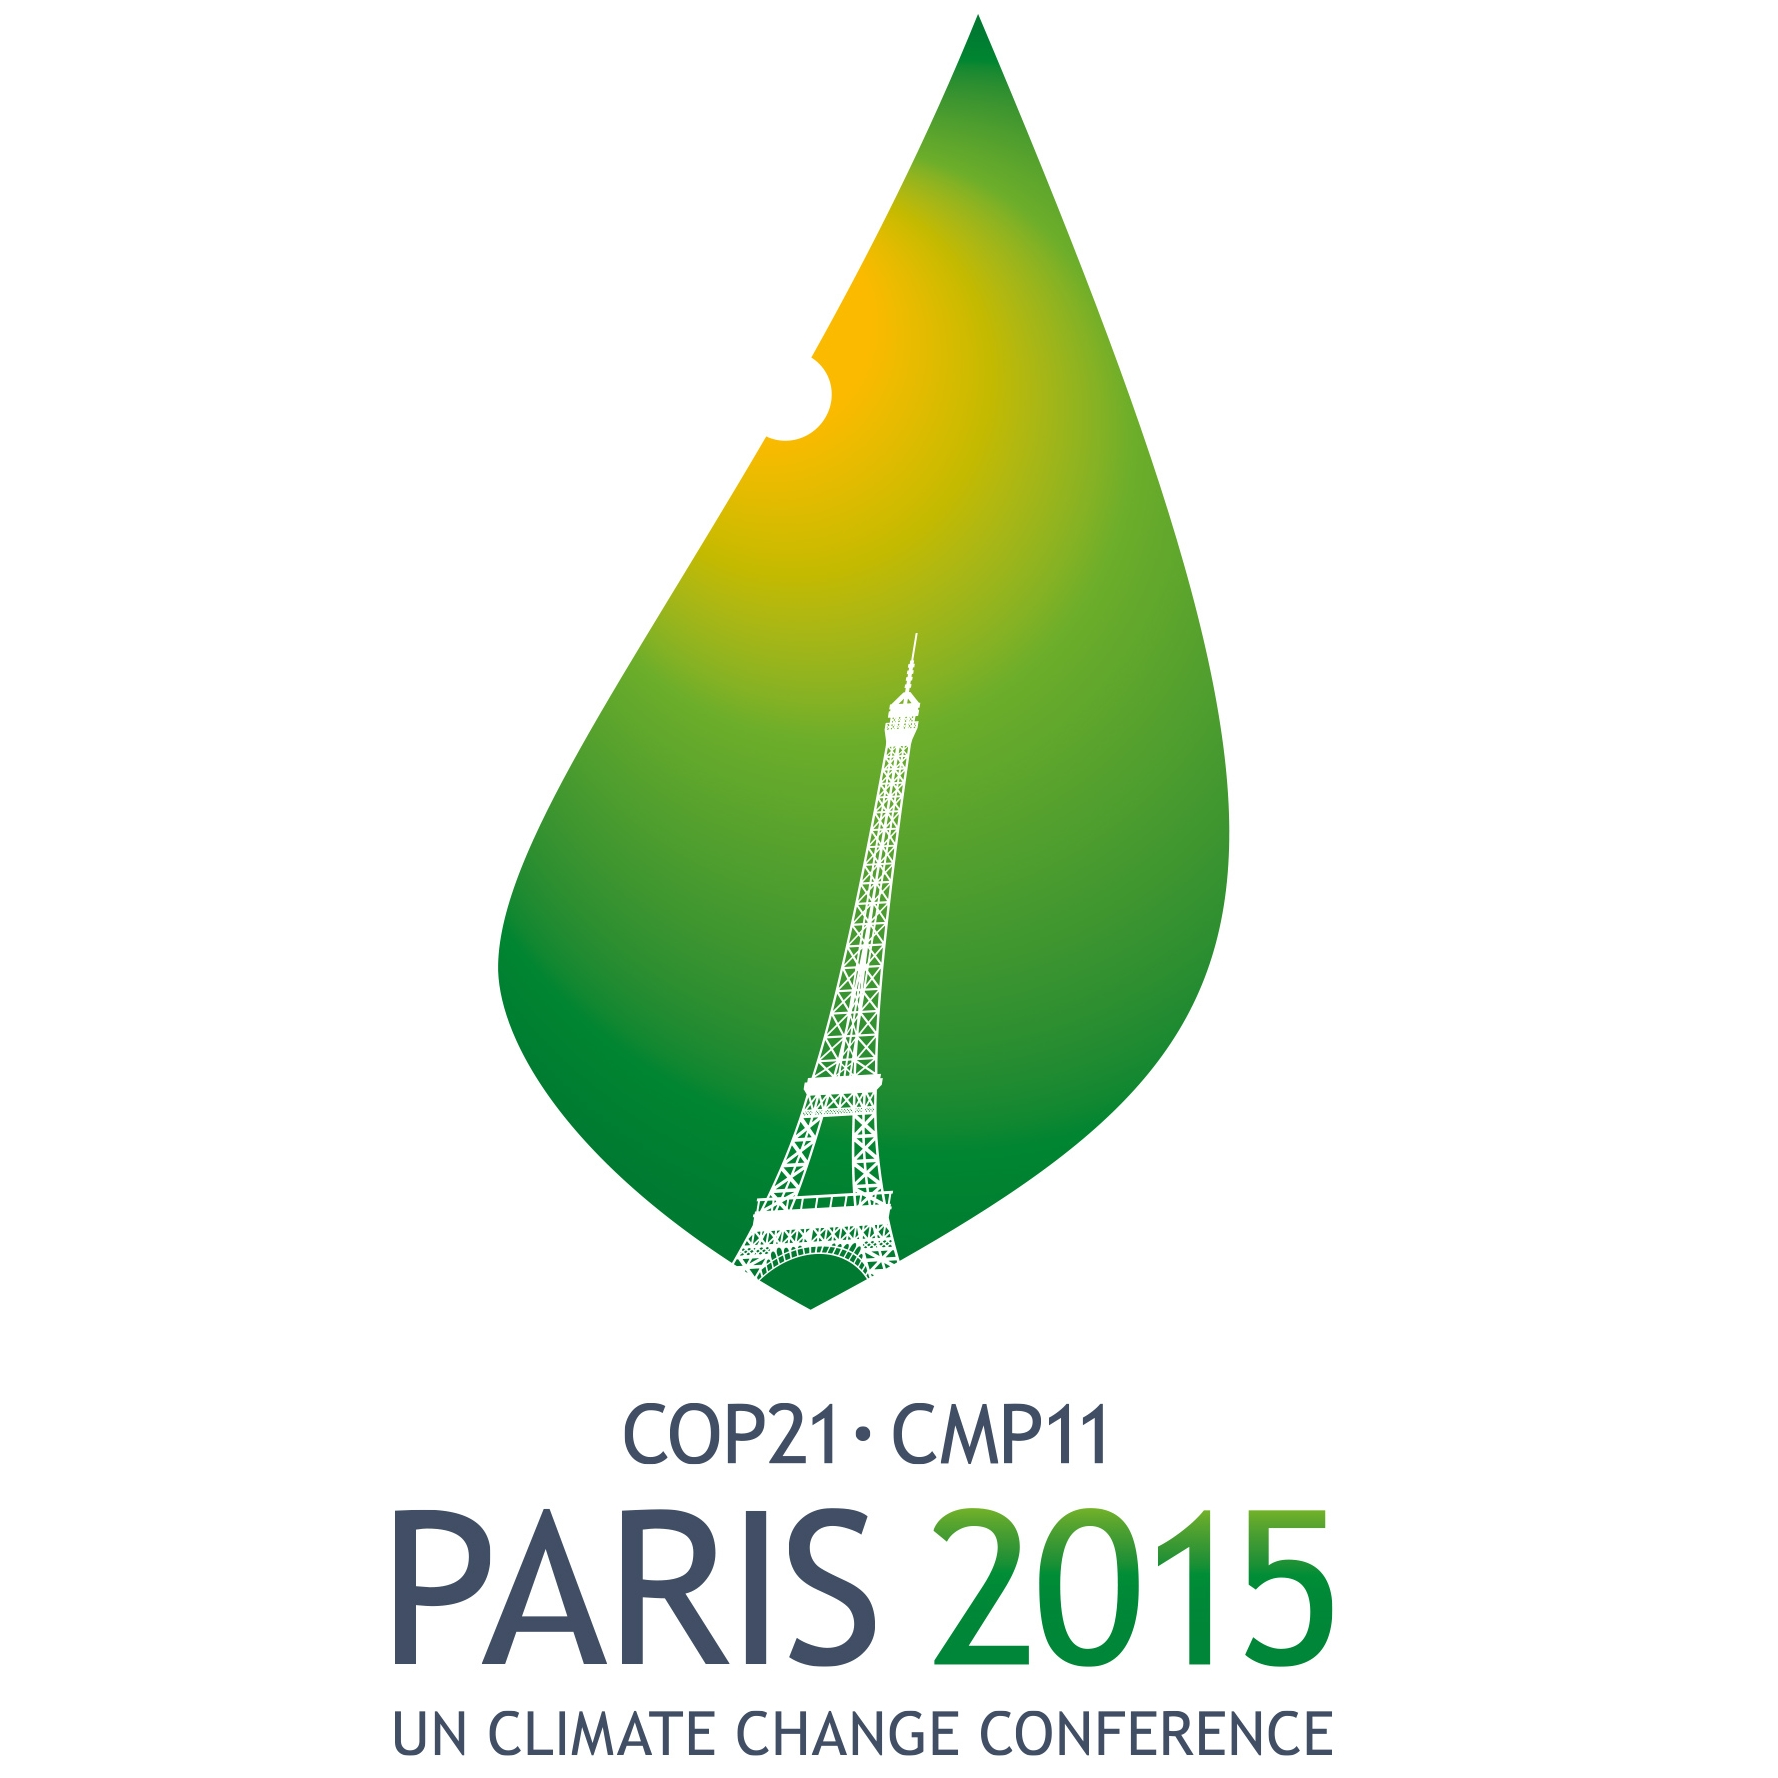 Students to Attend Paris Conference on Climate Change